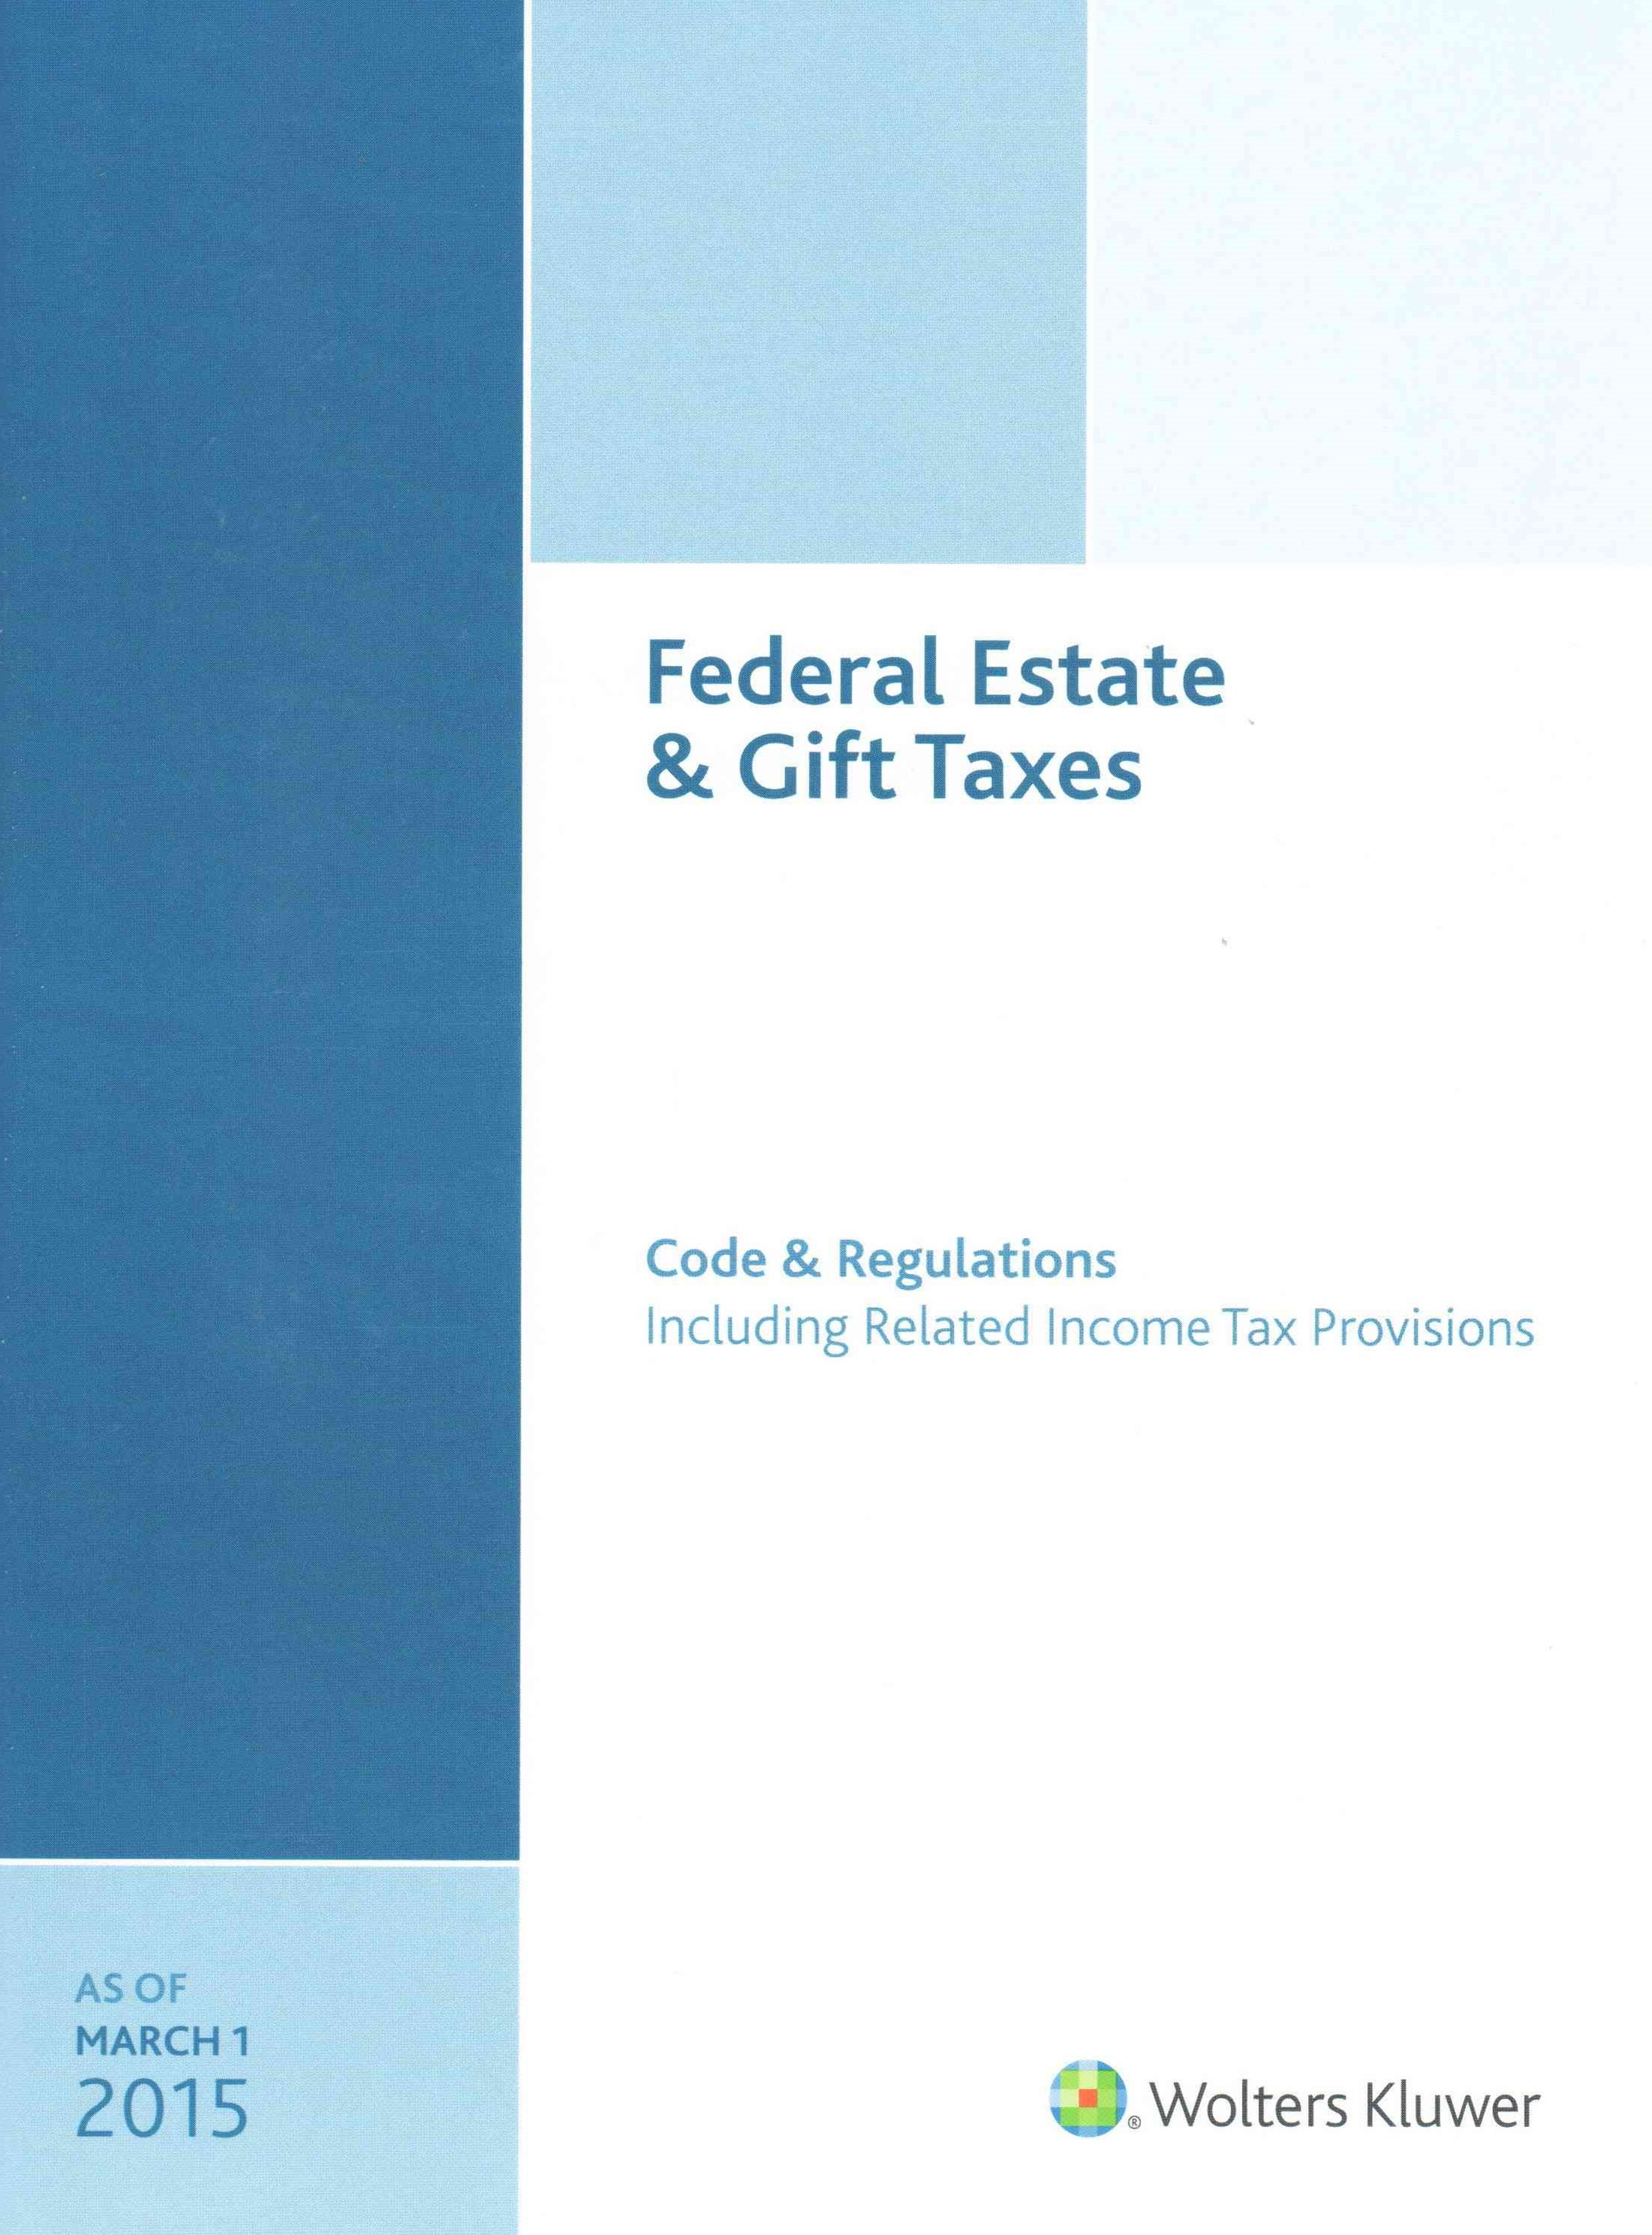 Federal Estate and Gift Taxes